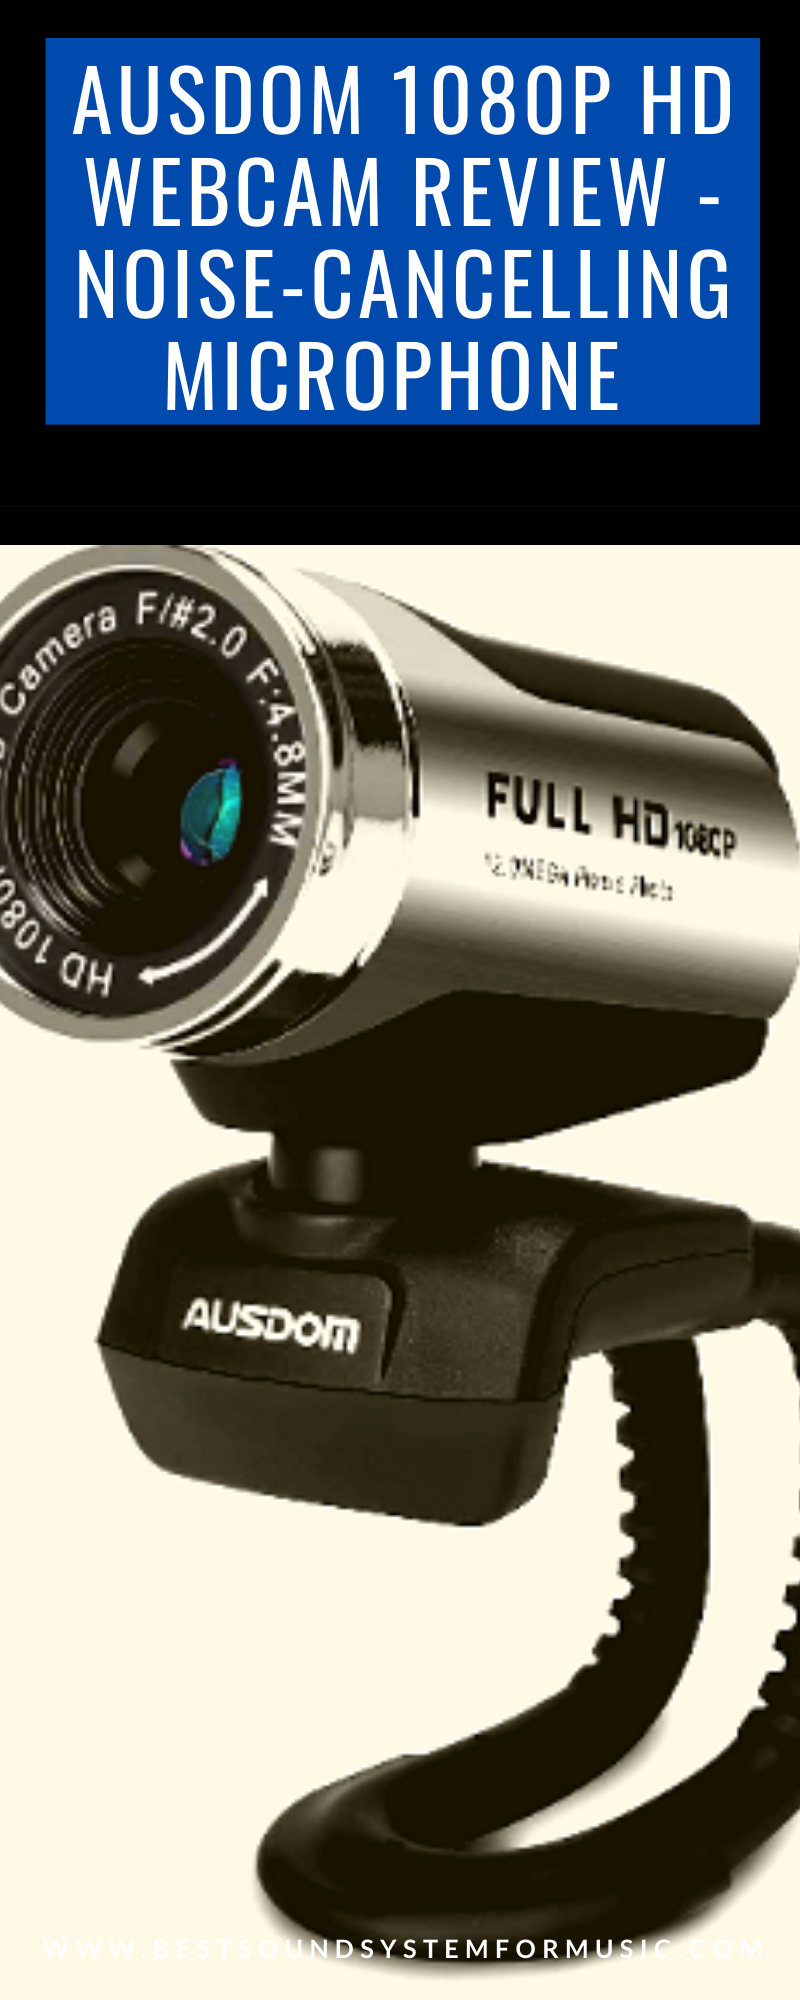 Ausdom 1080p HD Webcam Review - Cameras with Noise-cancelling Microphone